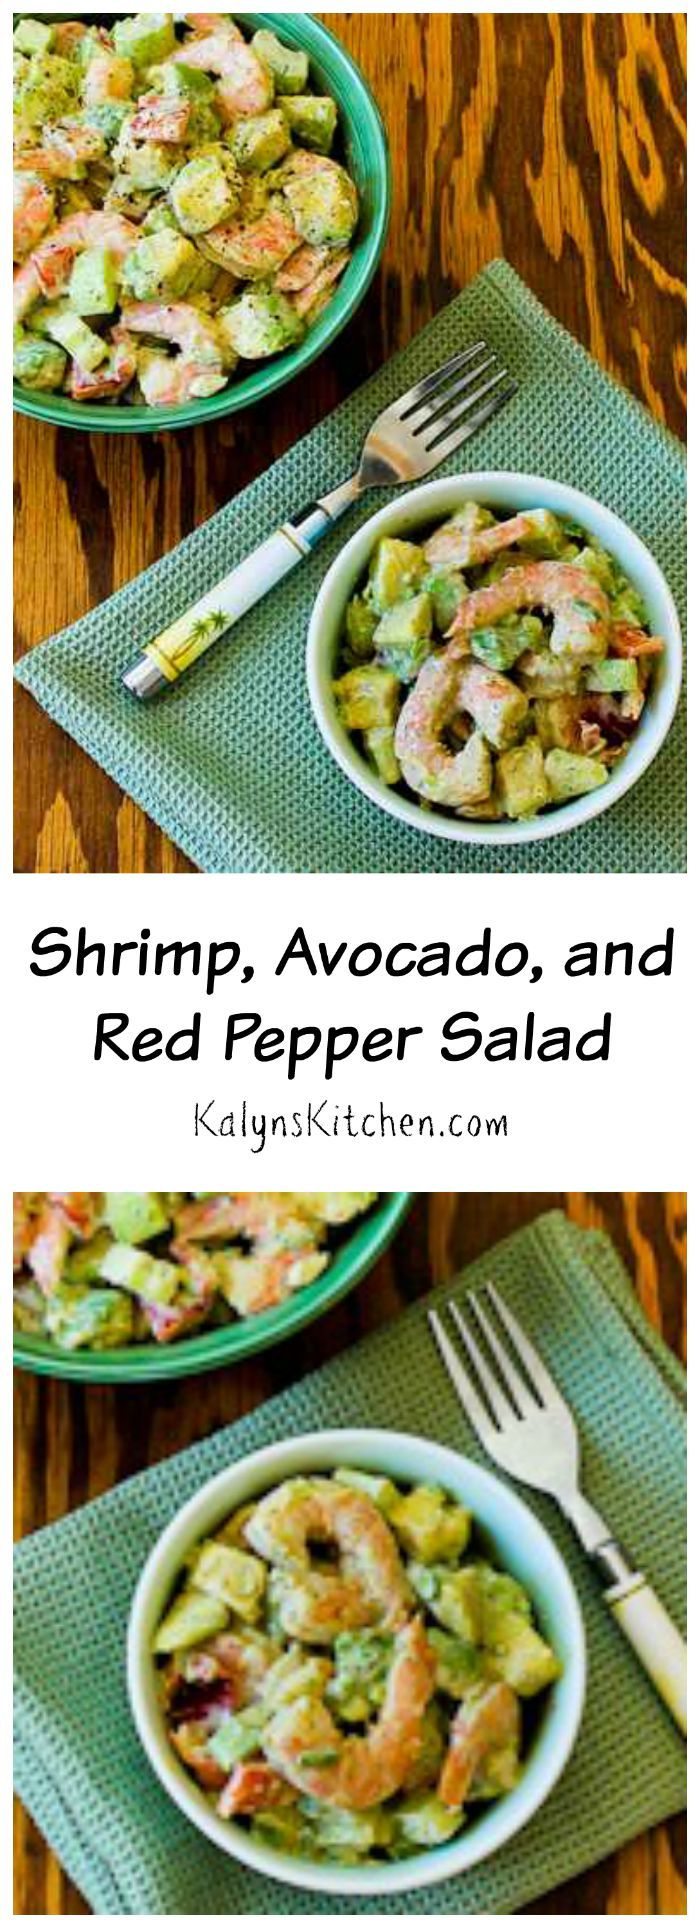 This Shrimp, Avocado, and Red Pepper Salad is delicious for an easy ...